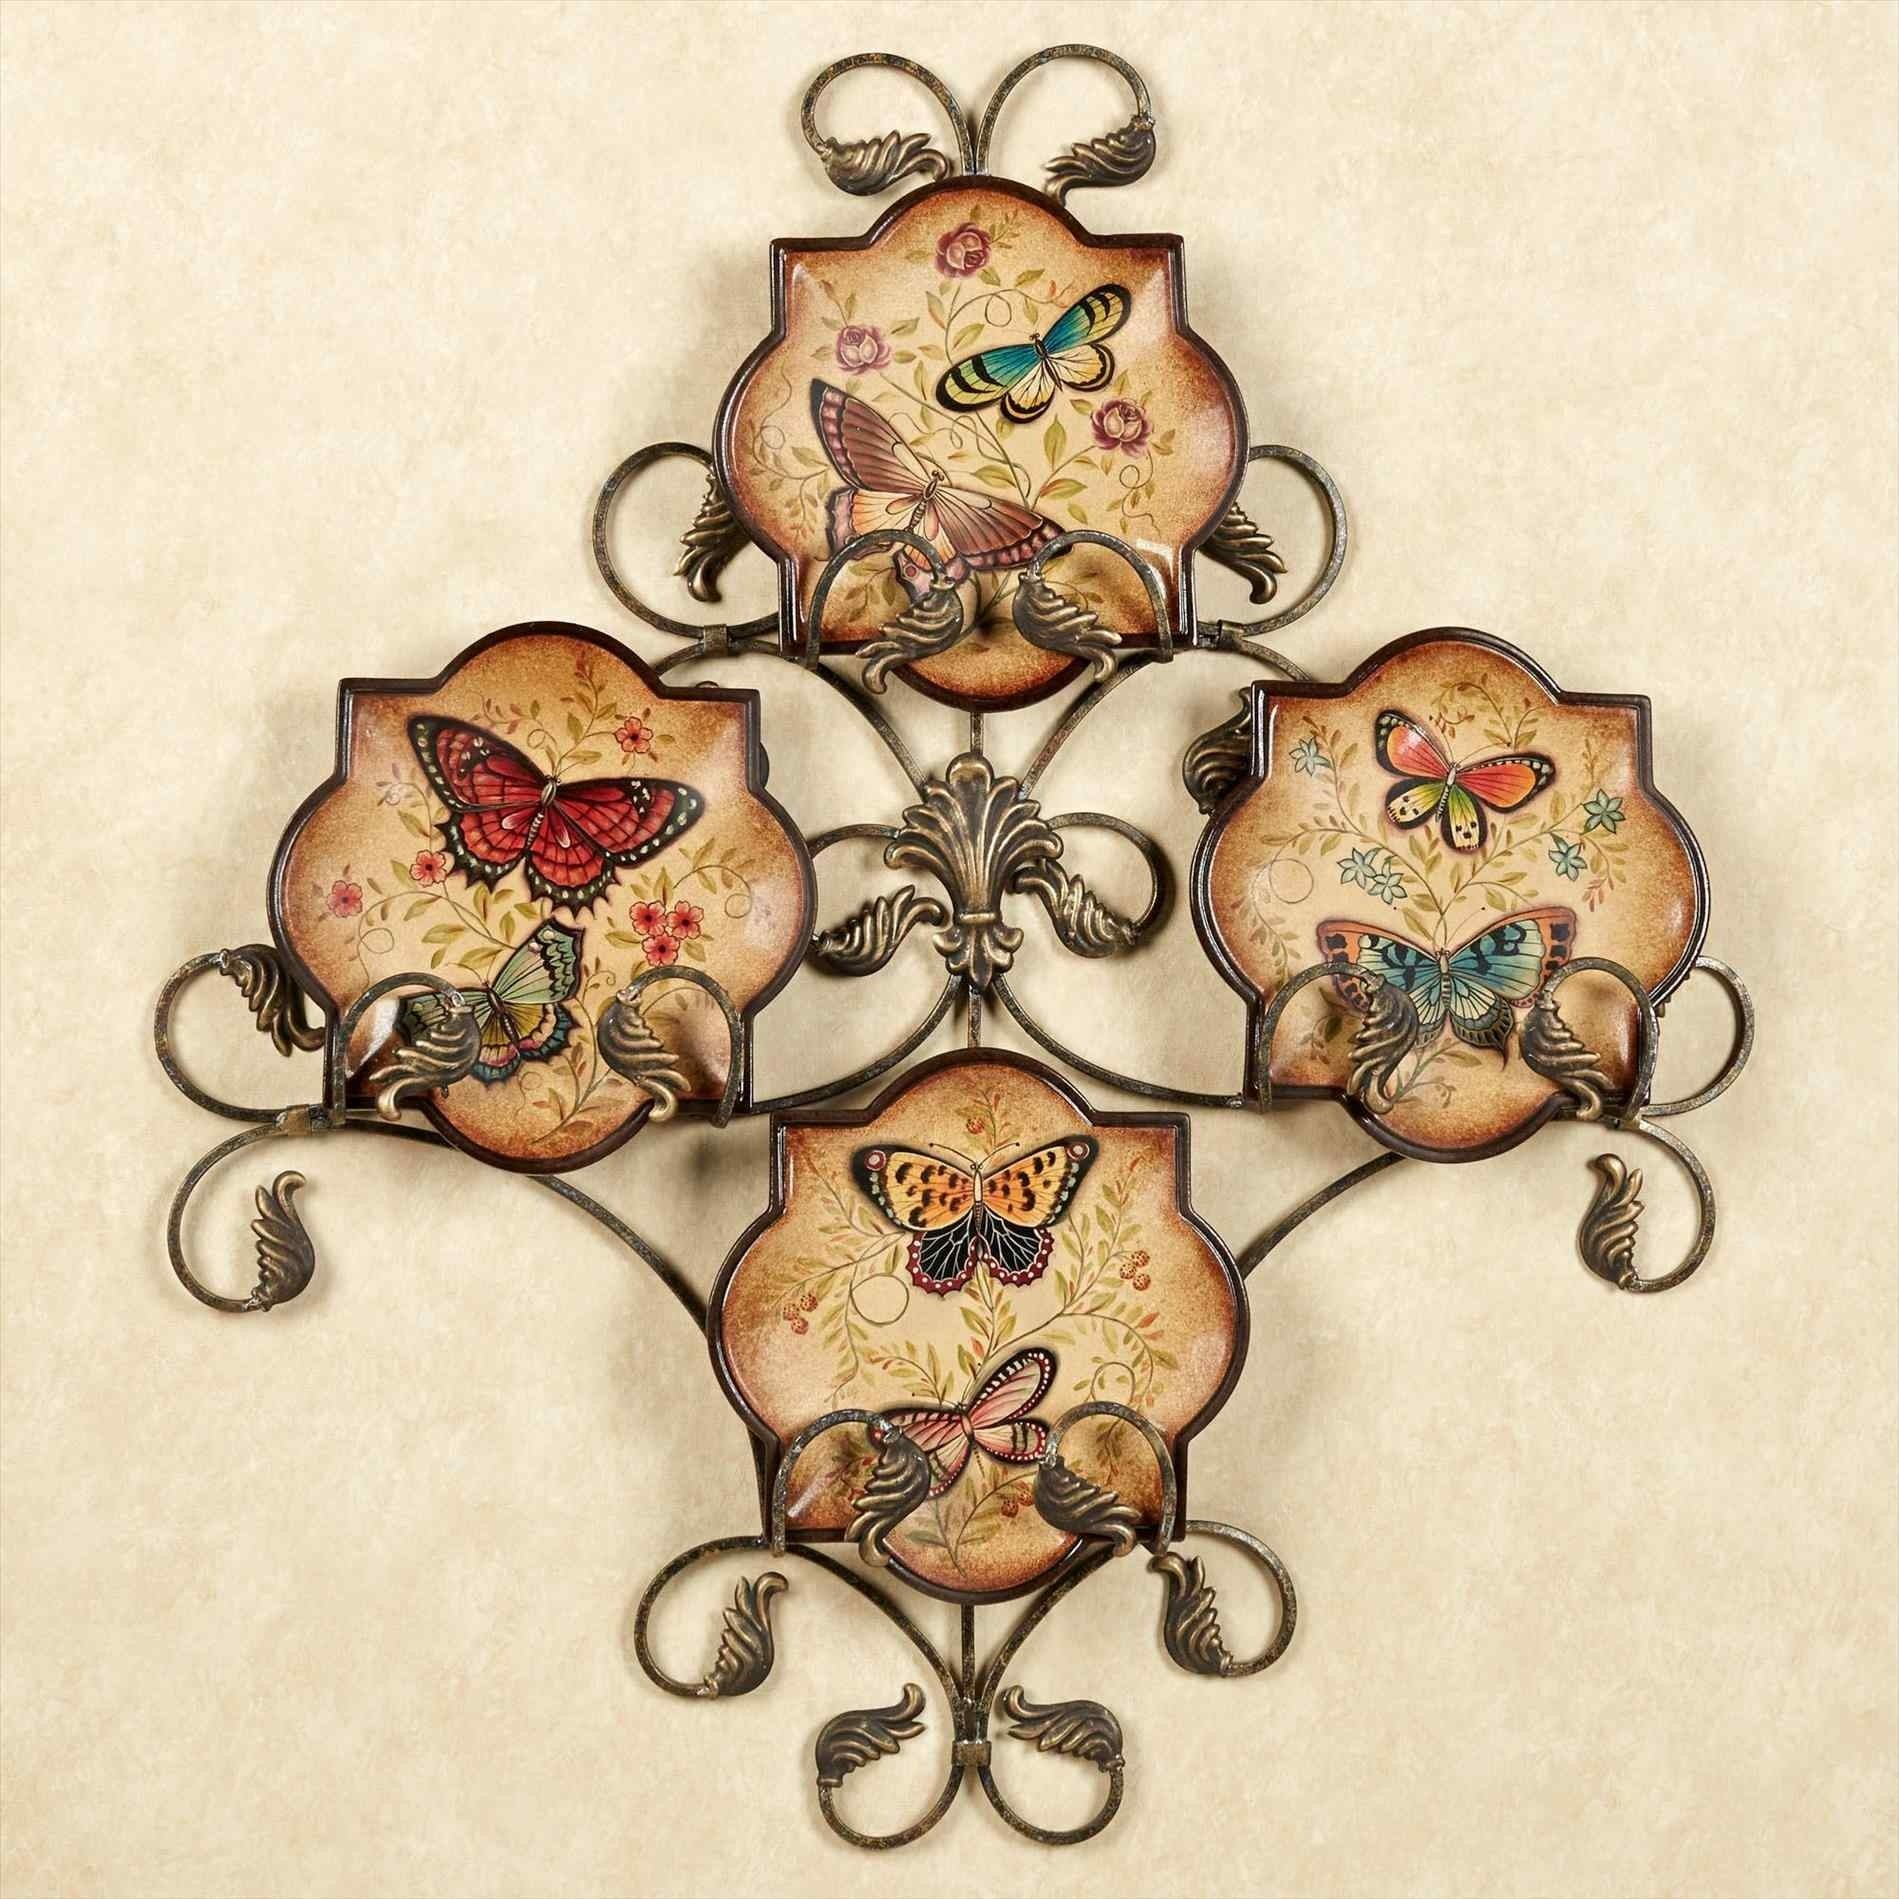 Superior Decorative Plates To Hang On Wall 1